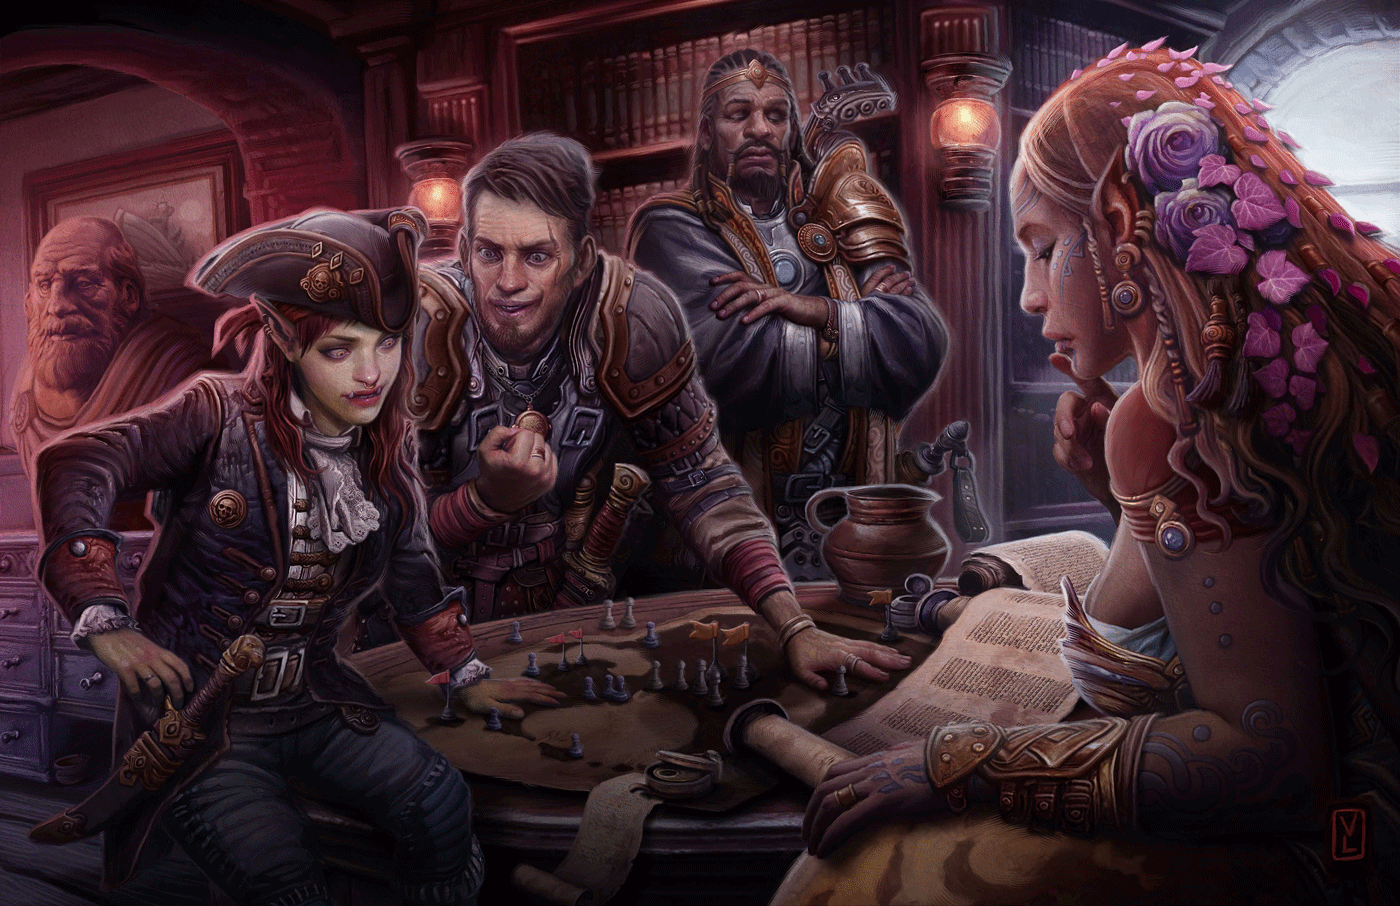 A female half-orc pirate captain and a white-skinned male human adventurer with a scar across his face are having a heated discussion over a war map in a cramped ship's cabin. A somber-looking male dwarf with ruddy skin and fine armor looks on, while a female elf with dark skin reads a scroll, seemingly oblivious to what's going on around her